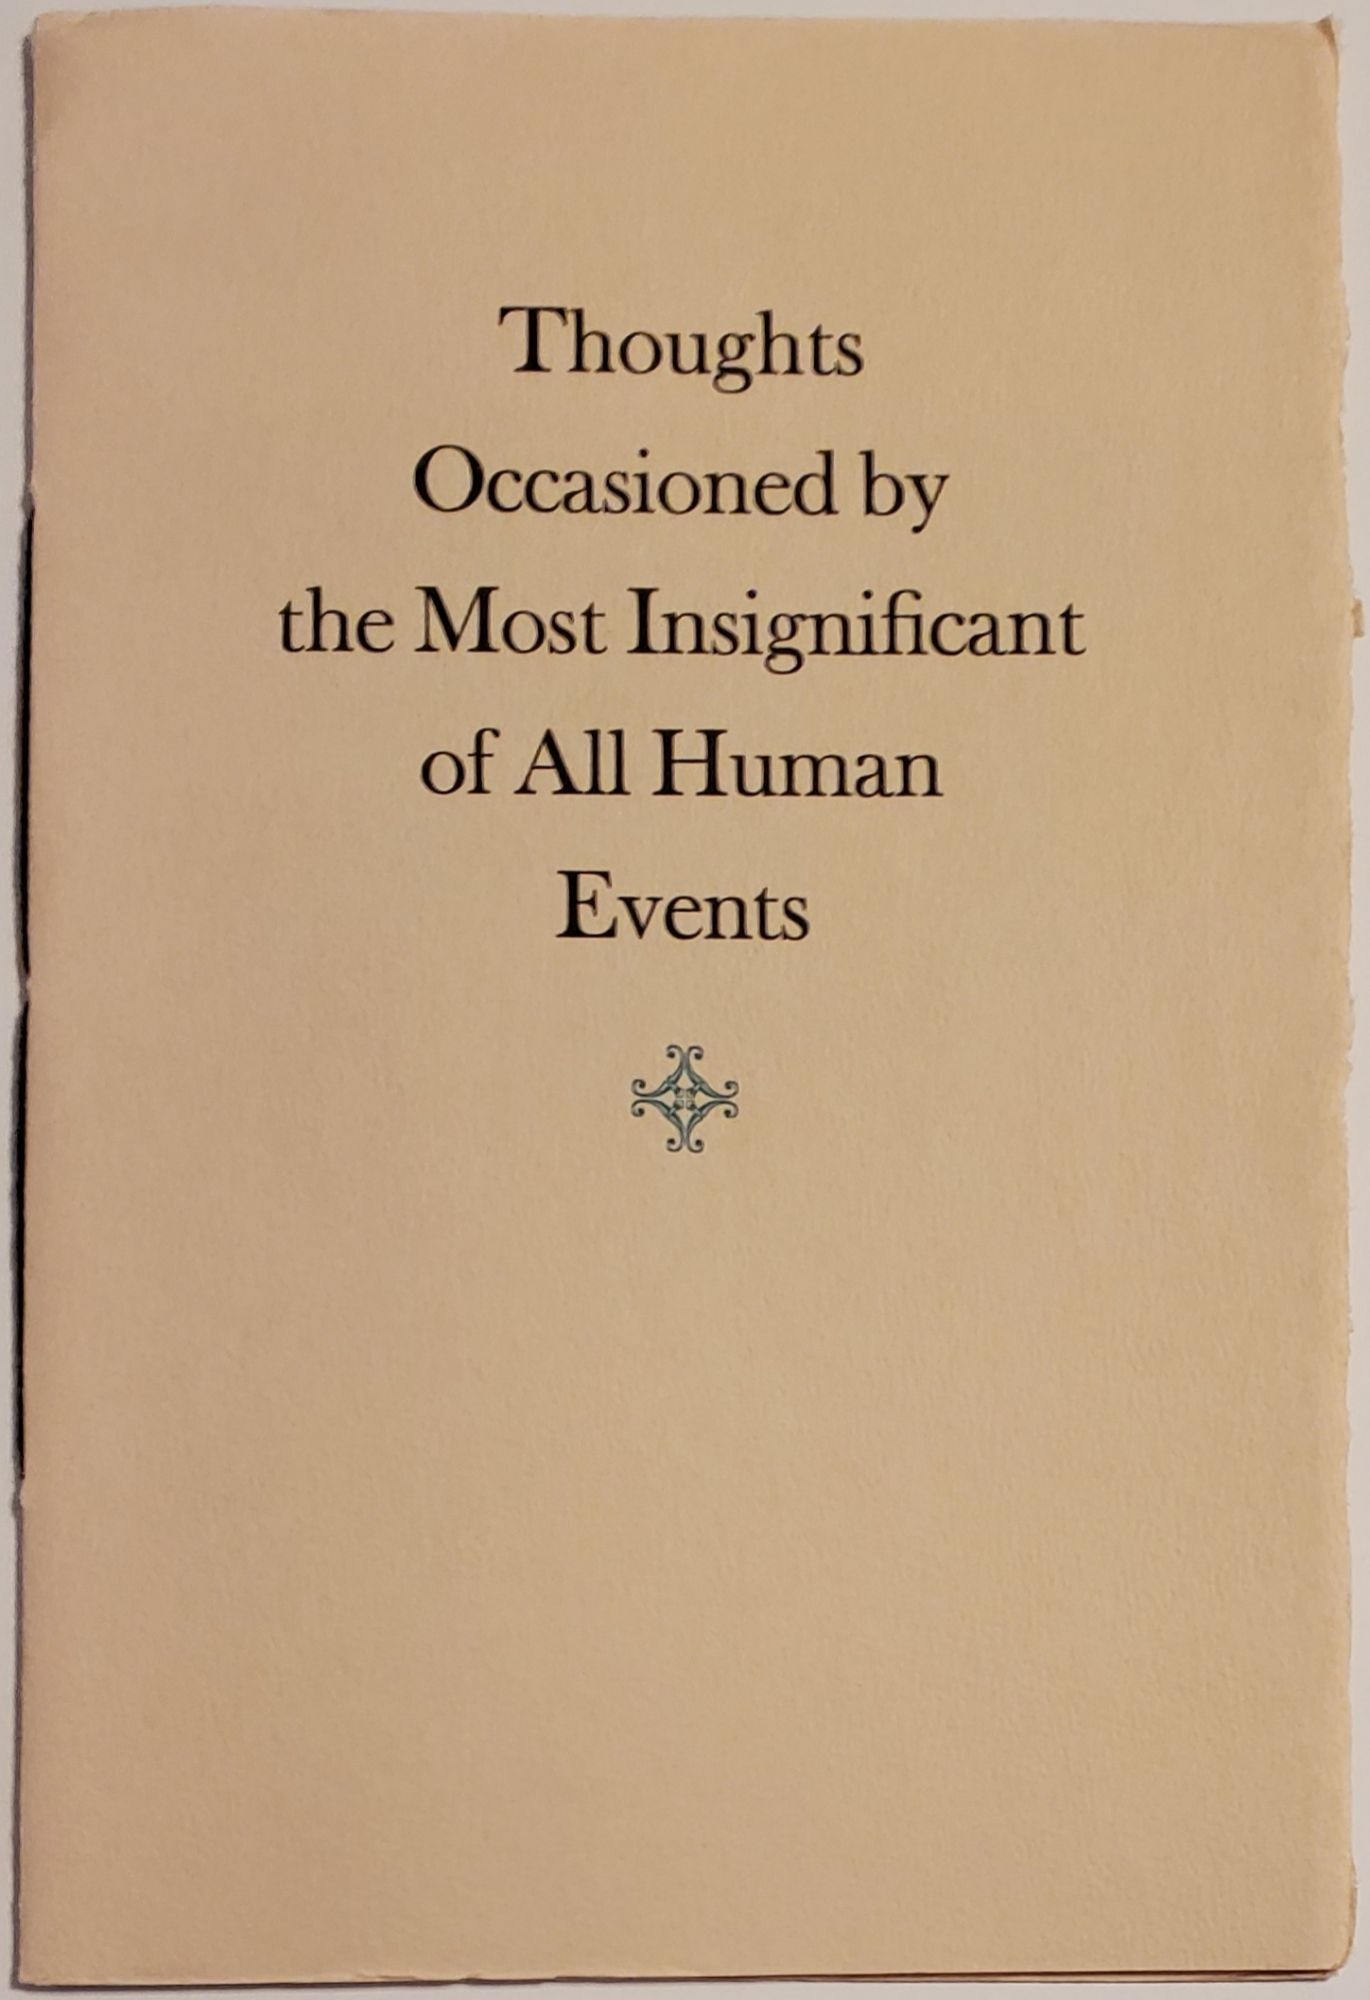 THOUGHTS OCCASIONED BY THE MOST INSIGNIFICANT OF ALL HUMAN EVENTS. Galway Kinnell.